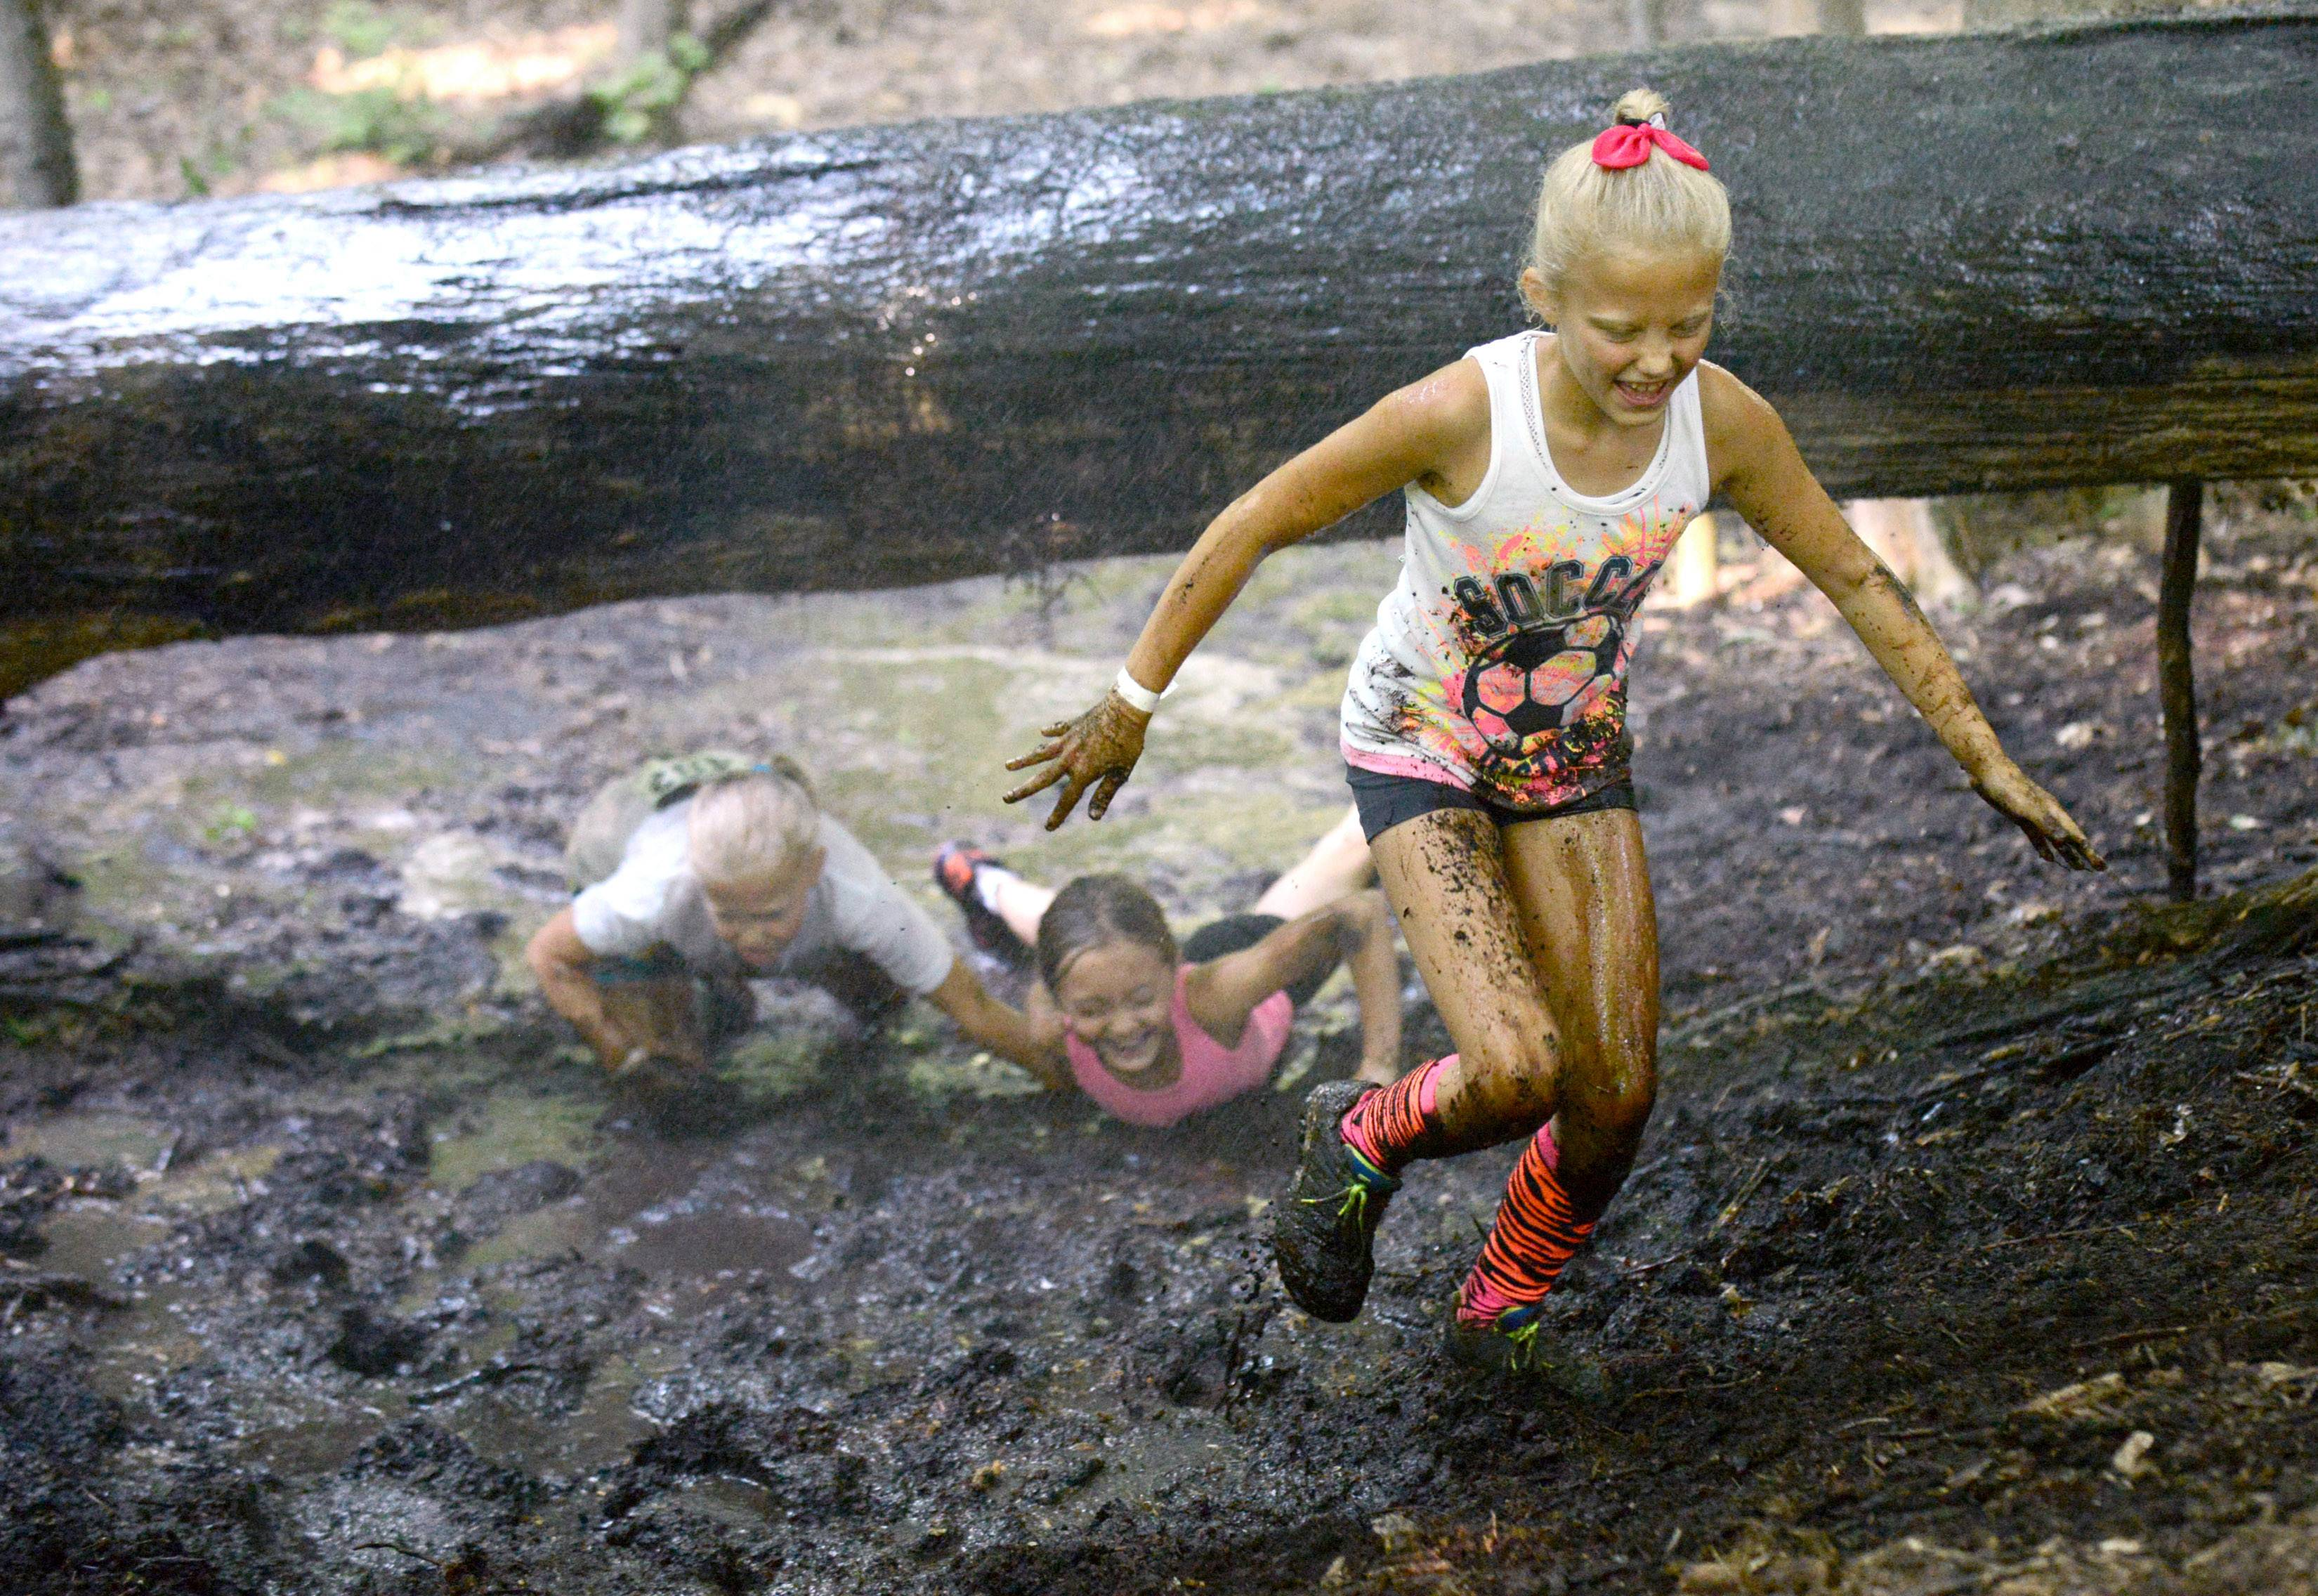 Elizabeth Johnson, 8, of Huntley, rises from the mud as her sister Annabel, 11, left, and friend Ava Ullrich, 9, also of Huntley, crawl under a tree limb in the Mud 'N Fun Viking Run at Good Templar Park in Geneva on Saturday. The trio had so much fun, they went through the mud a second time.